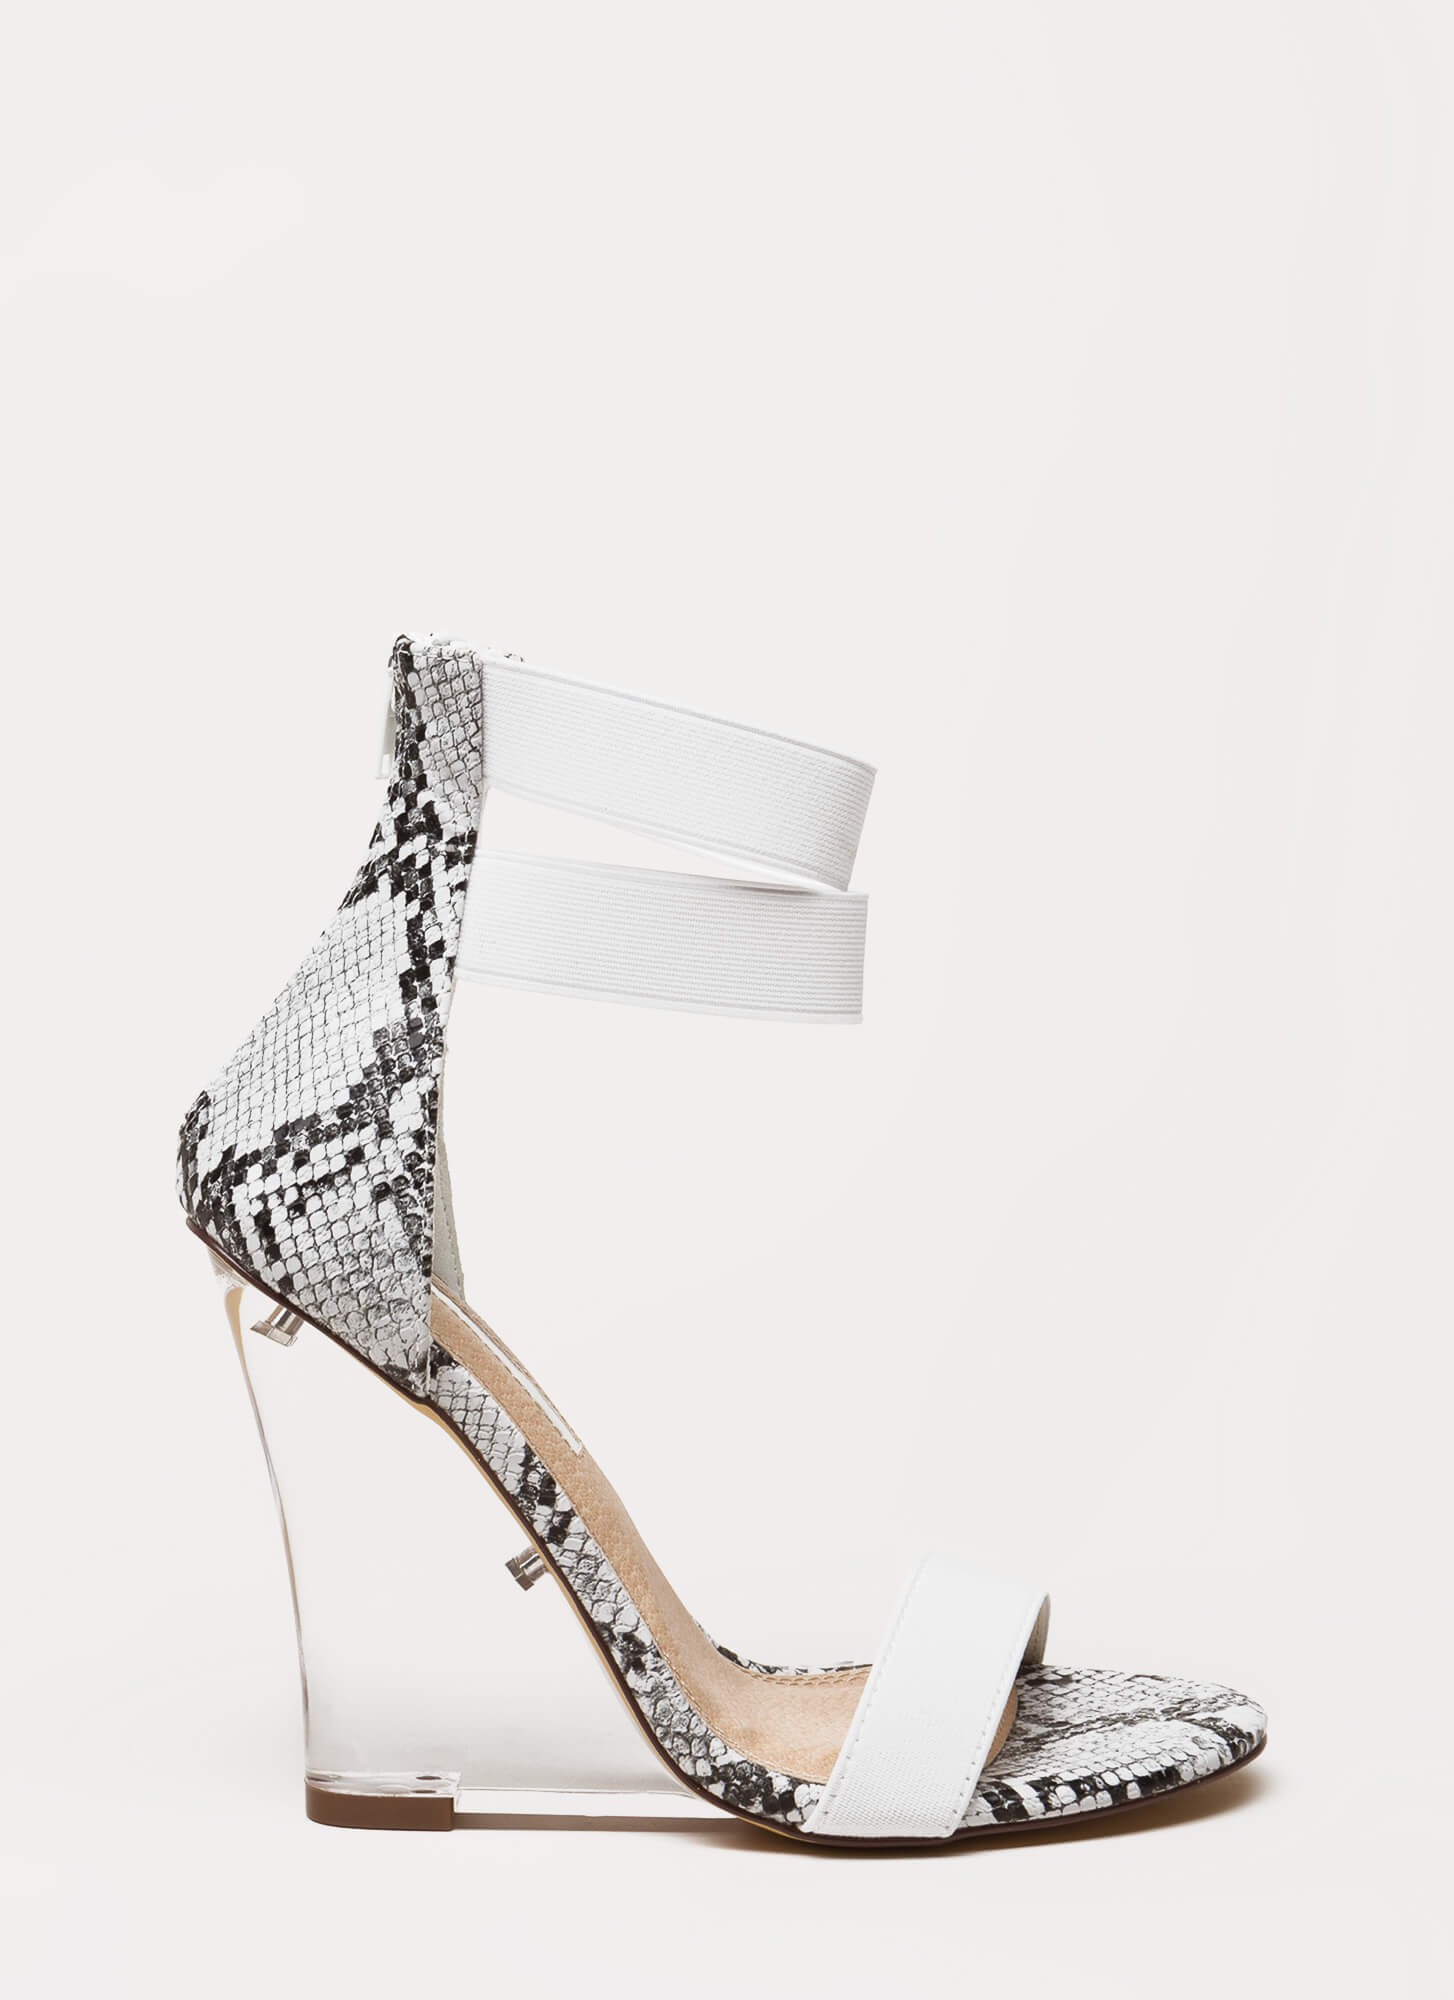 Clear The Room Strappy Lucite Wedges SNAKE